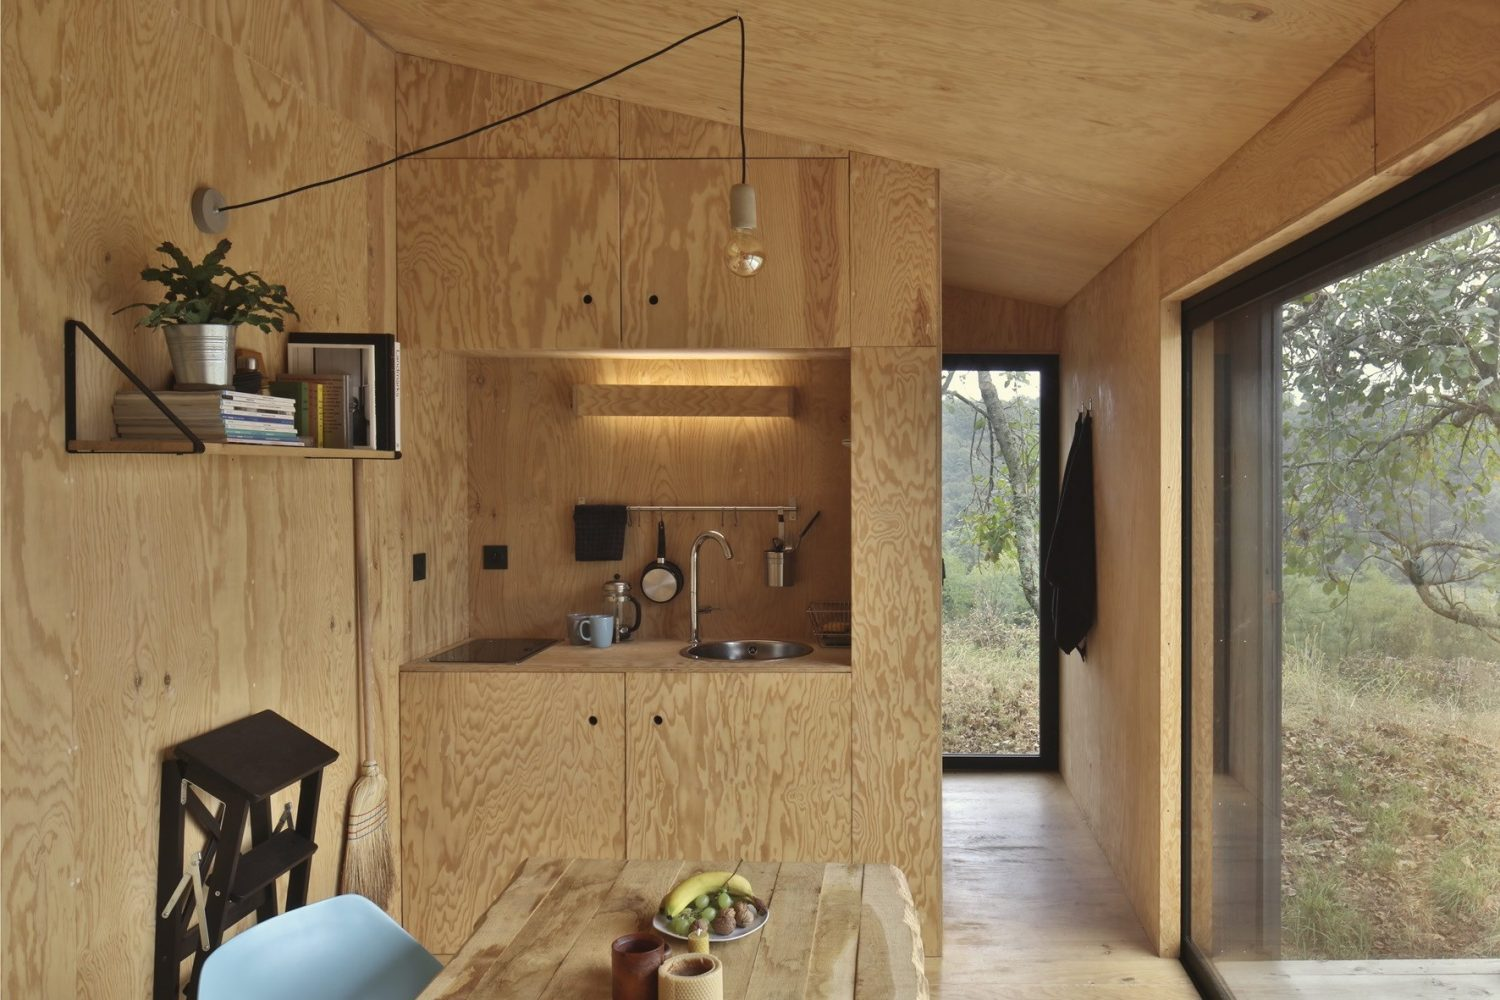 H-Eva Cabin | Tiny Cabin by A6A